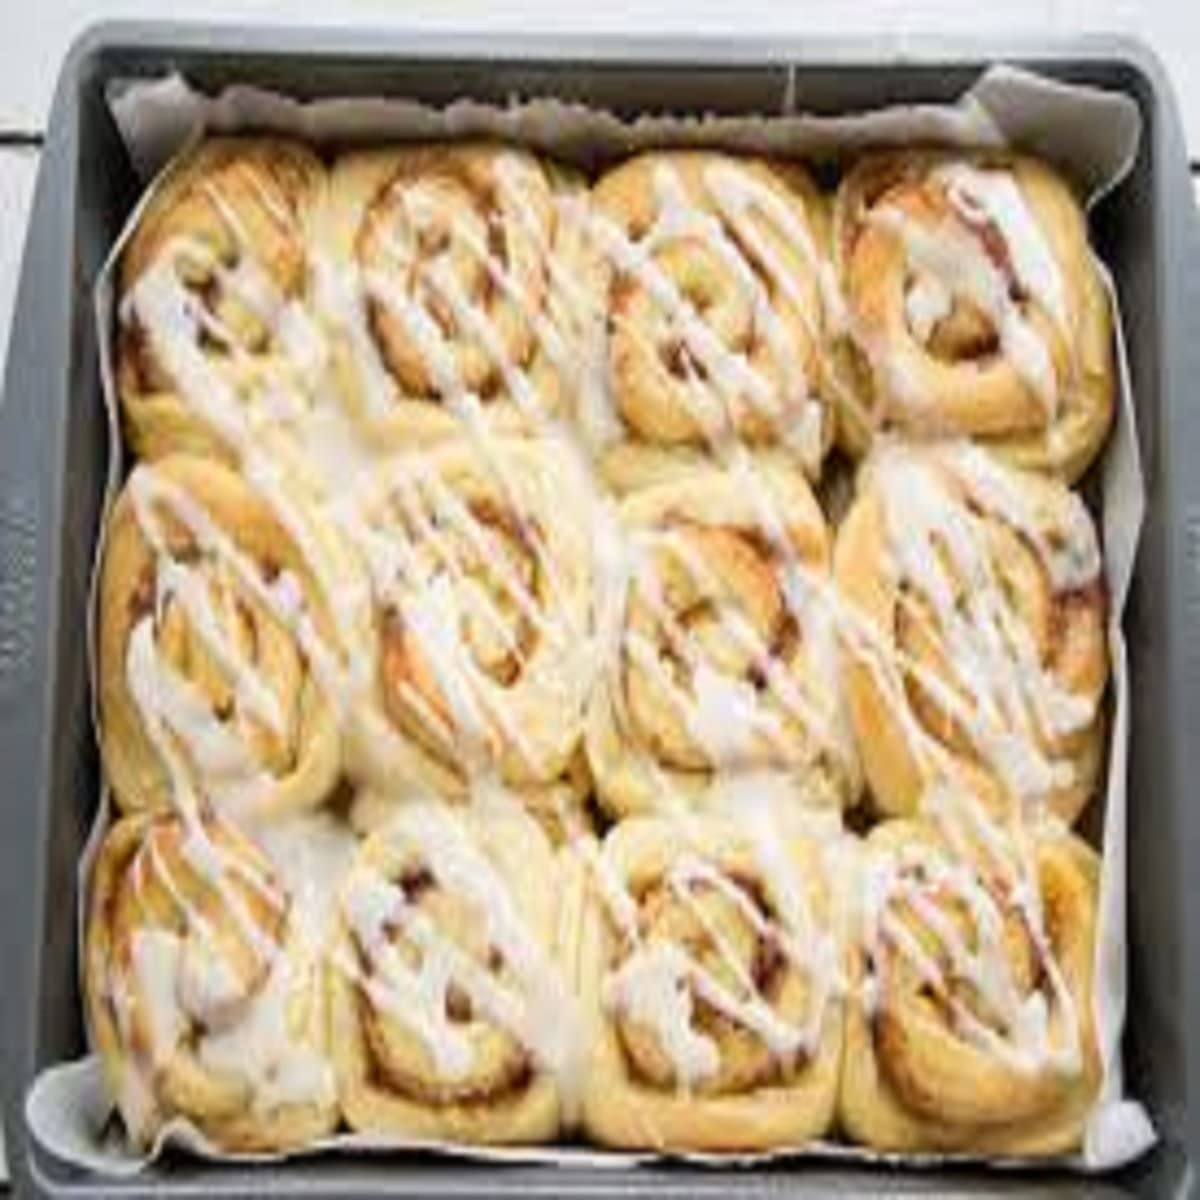 WARM CINNAMON BUN FRAGRANCE OIL - 4 OZ - FOR CANDLE & SOAP MAKING BY VIRGINIA CANDLE SUPPLY - FREE S&H IN USA